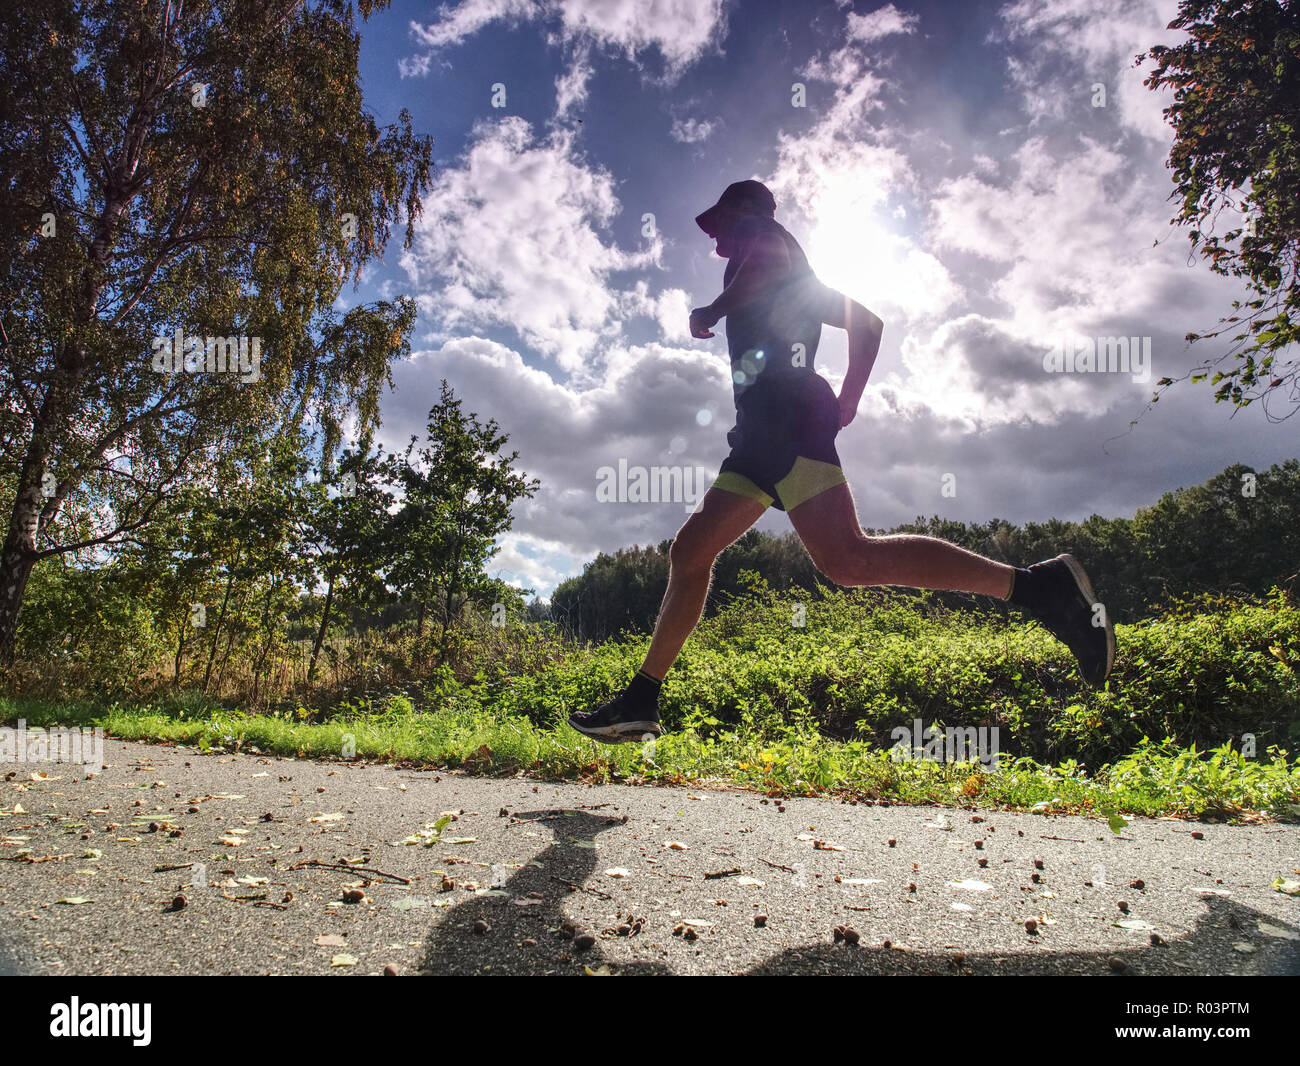 Jogging tall sports man in trees shadows with sun light behind him while wearing black yellow shorts and blue jogging attire Stock Photo